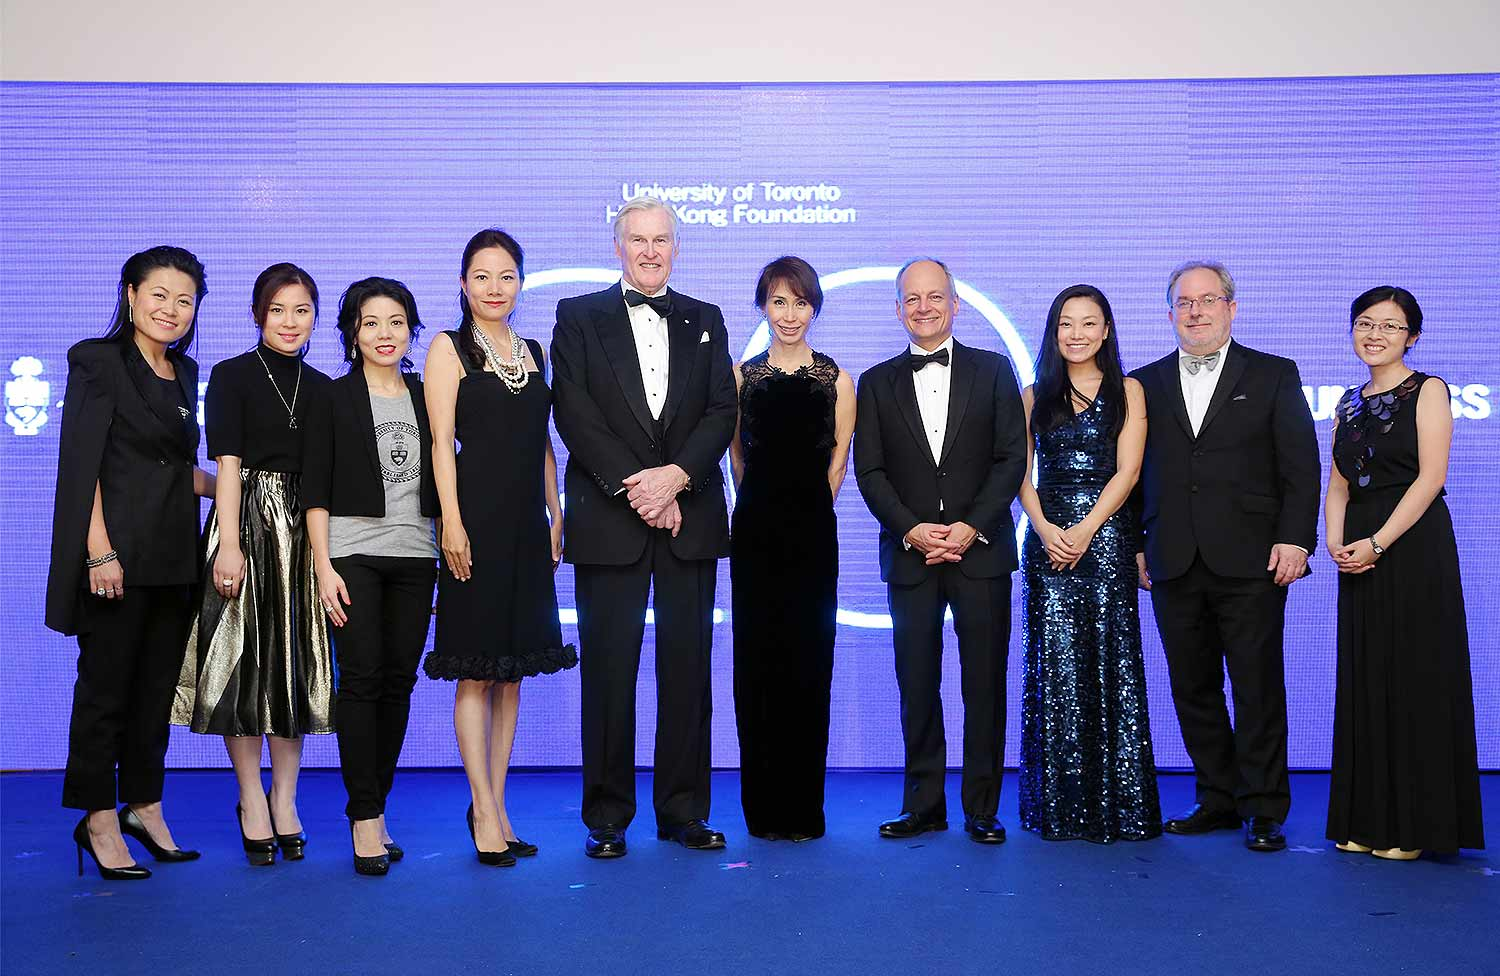 The University of Toronto (Hong Kong) Foundation Celebrates 20 Years of Impact